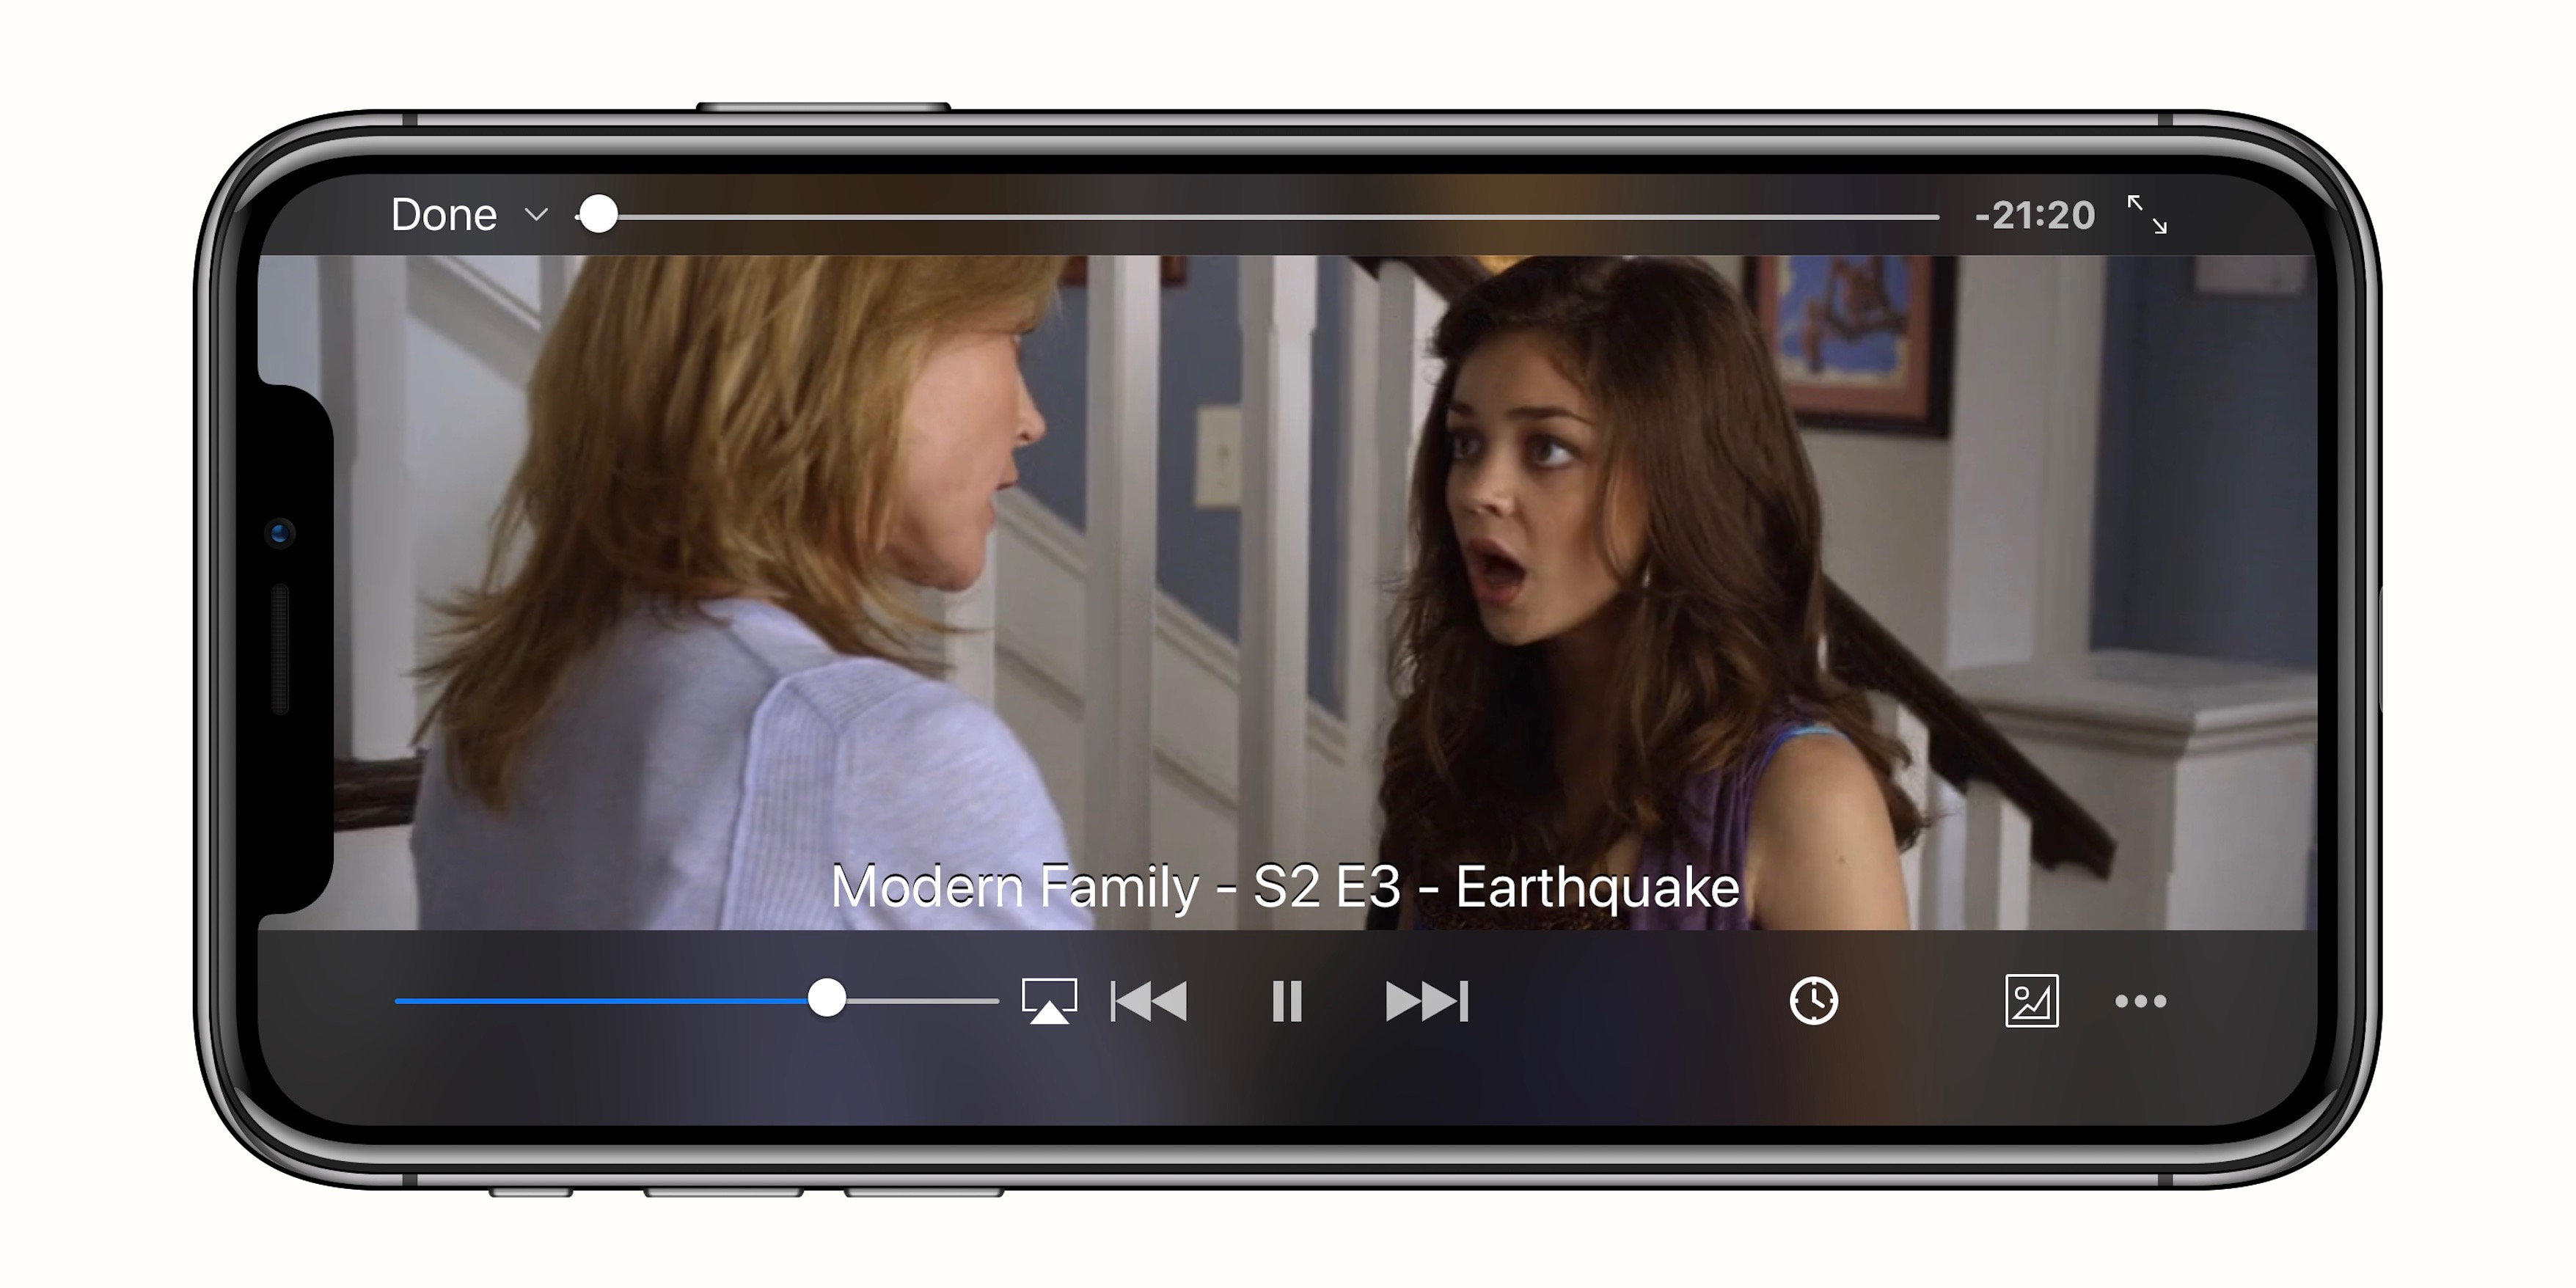 VLC media player for iOS now optimized for iPhone X screen